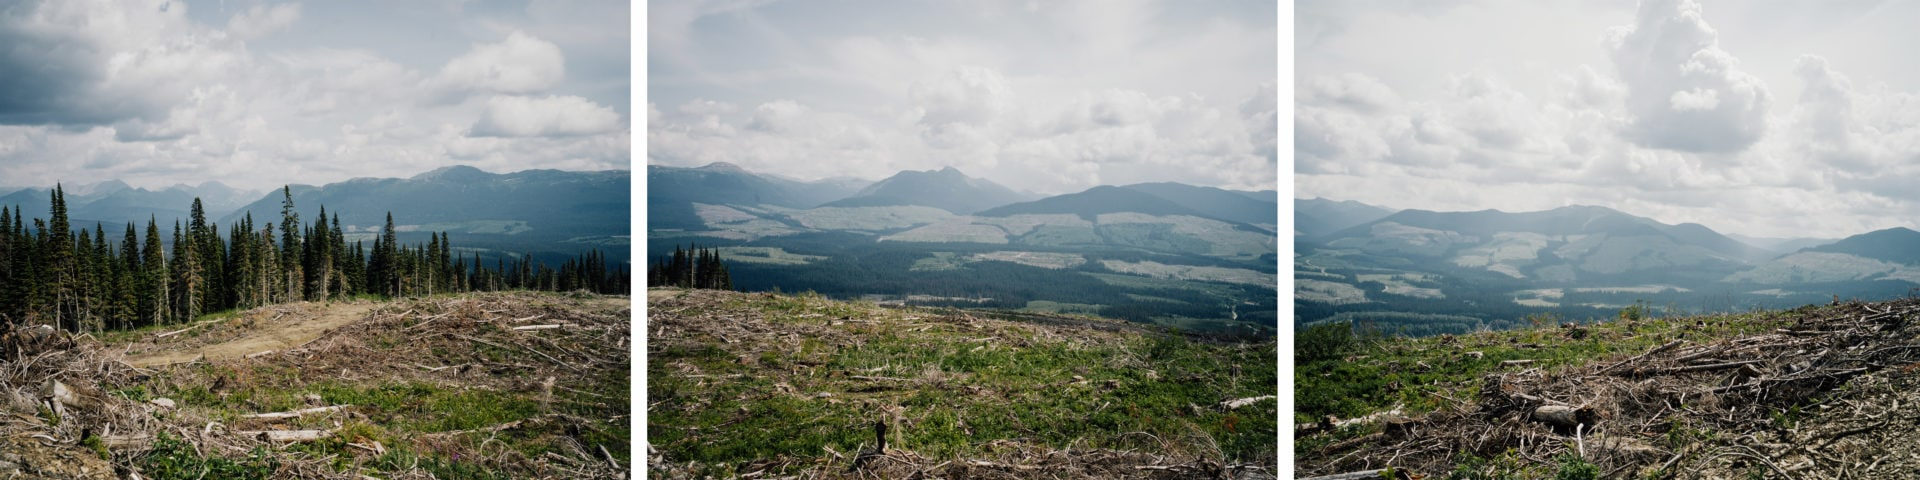 Clearcuts in the anzac river valley of British Columbia